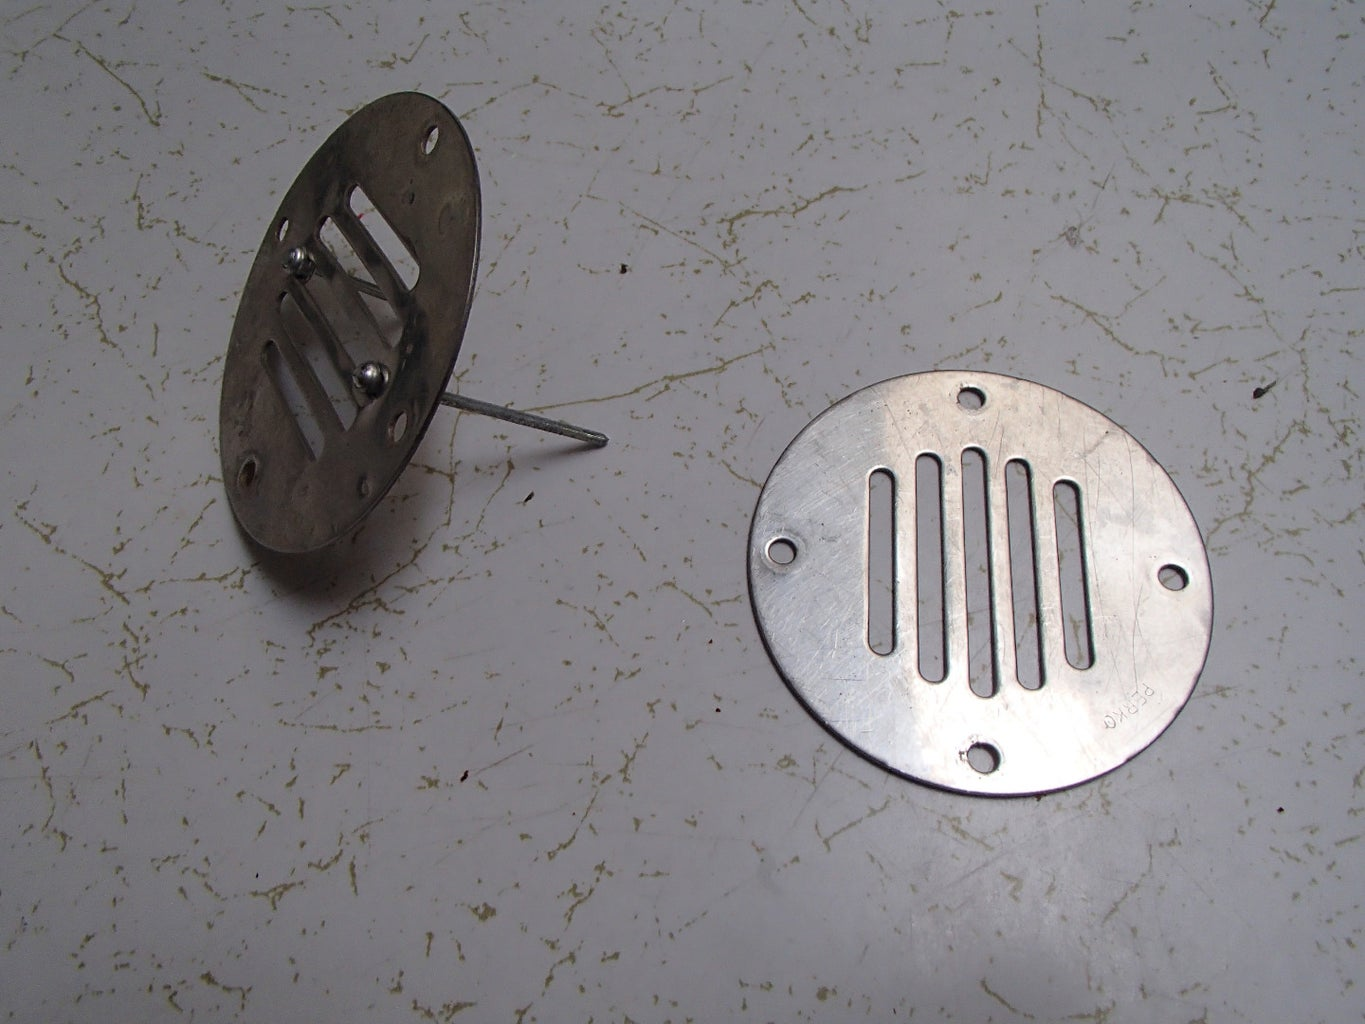 Removable Drain Covers for Sailboat Cockpit Drains